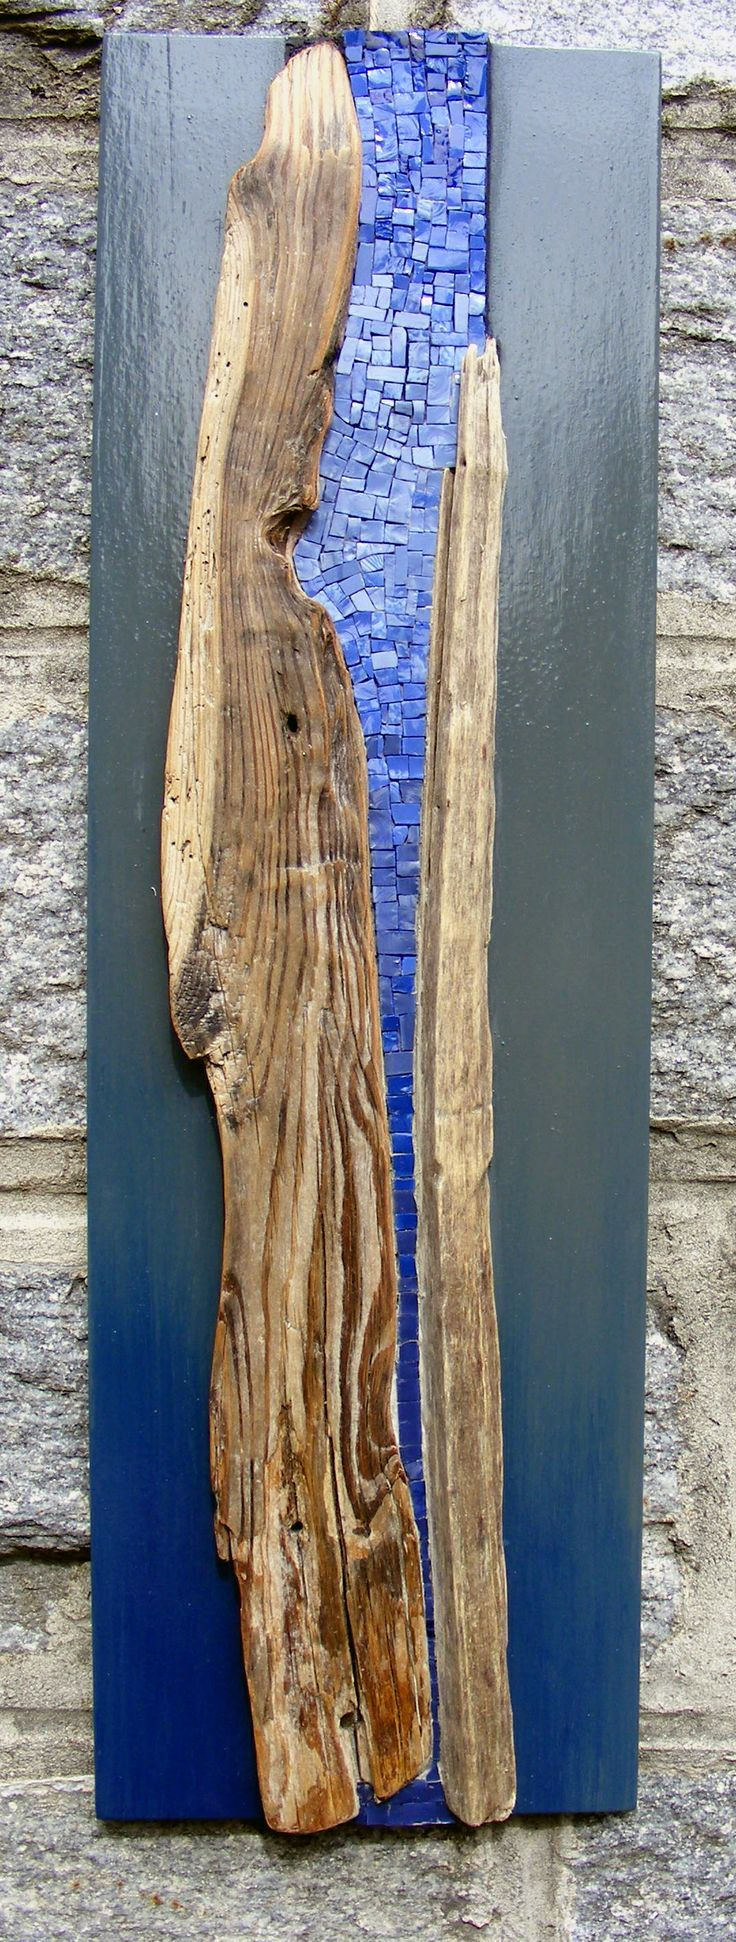 Mosaic in a drift wood from Brovelli Interior Design by Gagliela Pagliai.